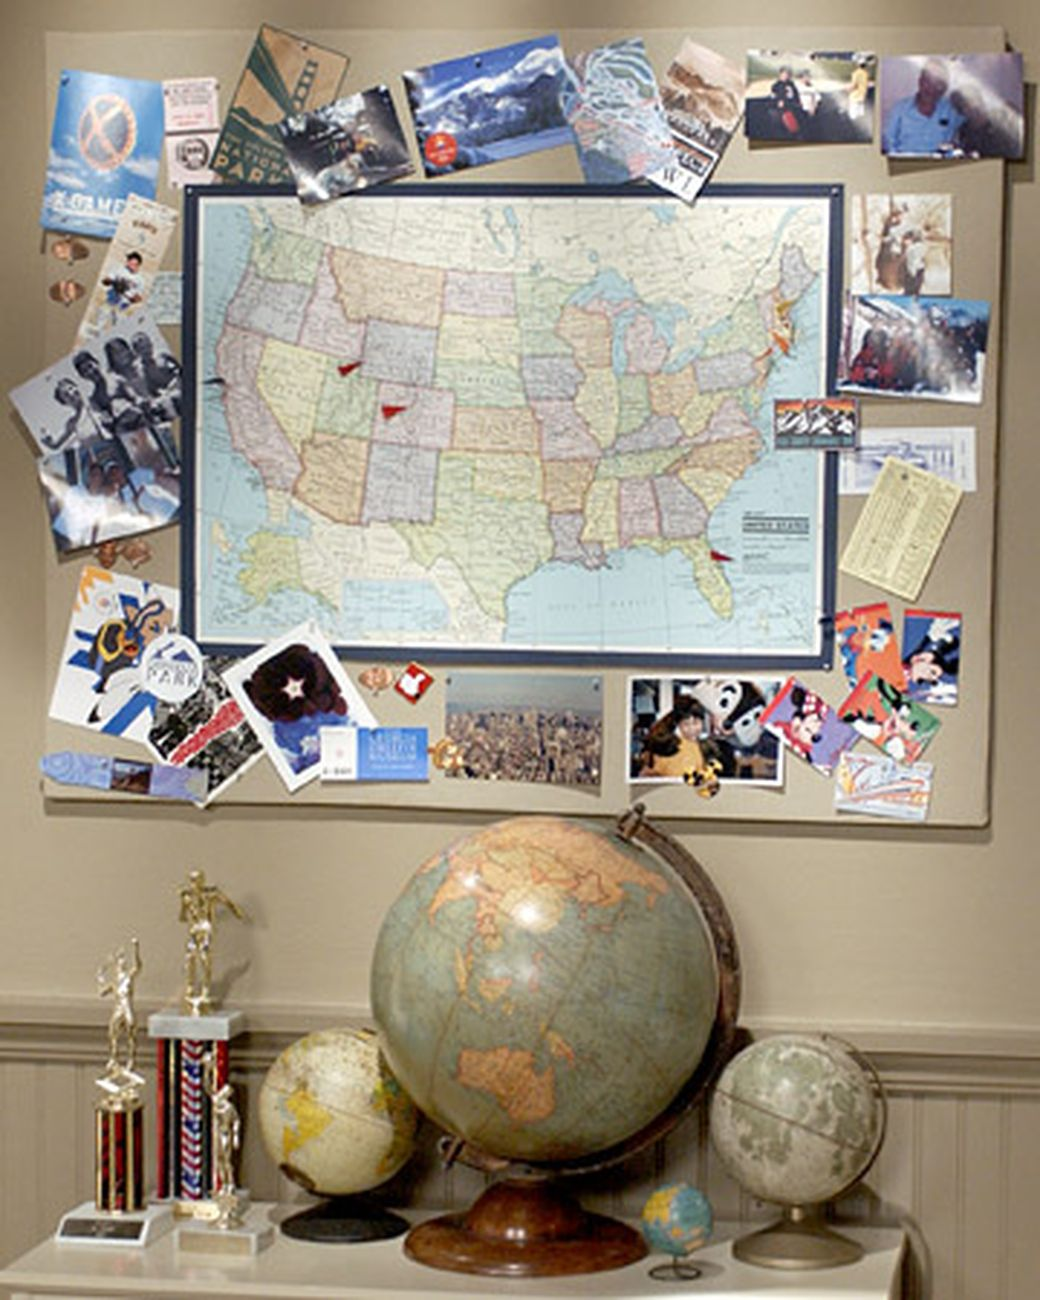 Map memory board small flags ticket stubs and fabric covered map memory board gumiabroncs Image collections